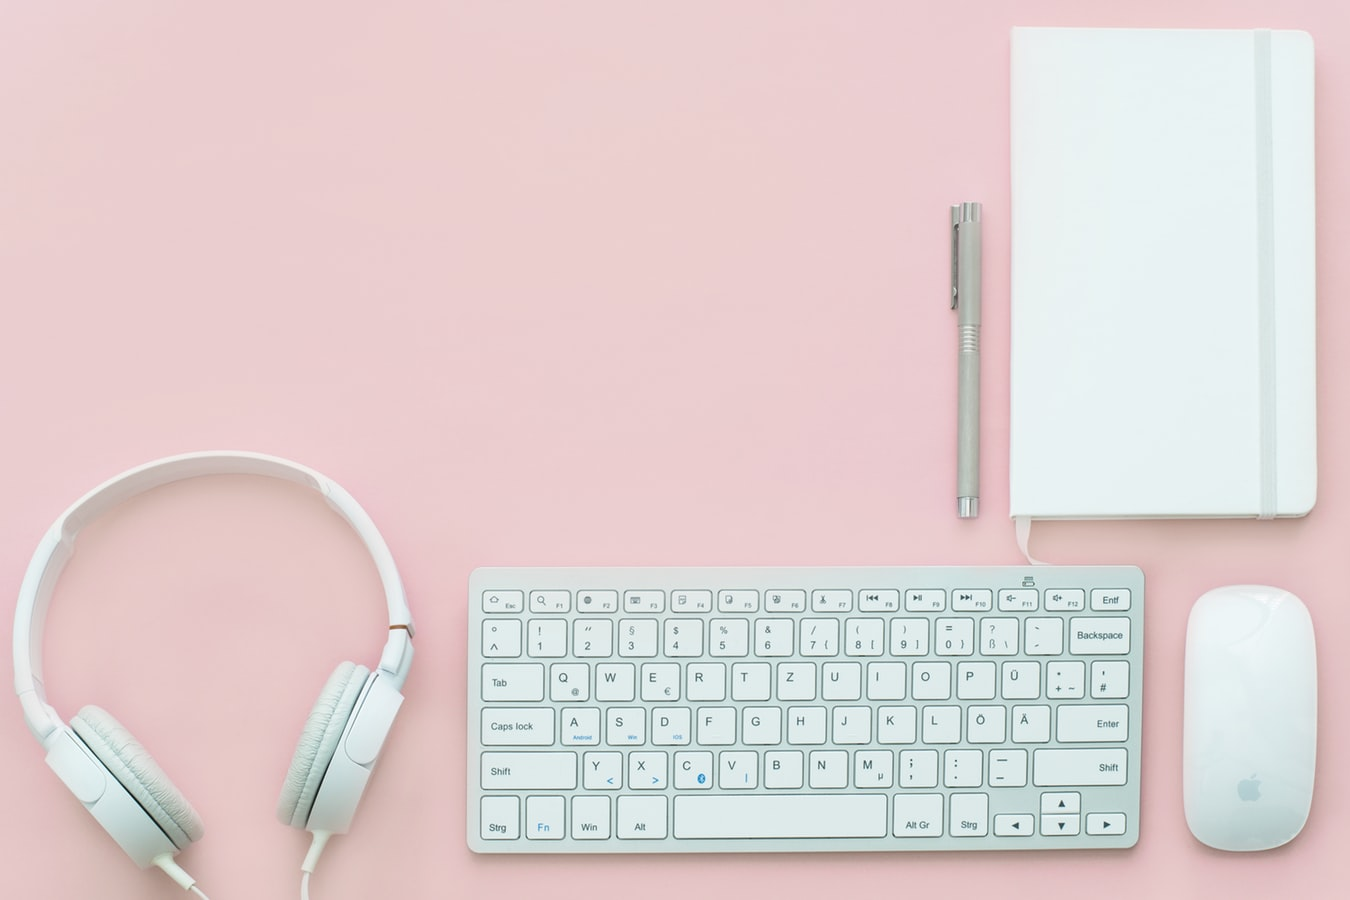 A pair of headphones, keyboard, pen, mouse and a journal on a pink background